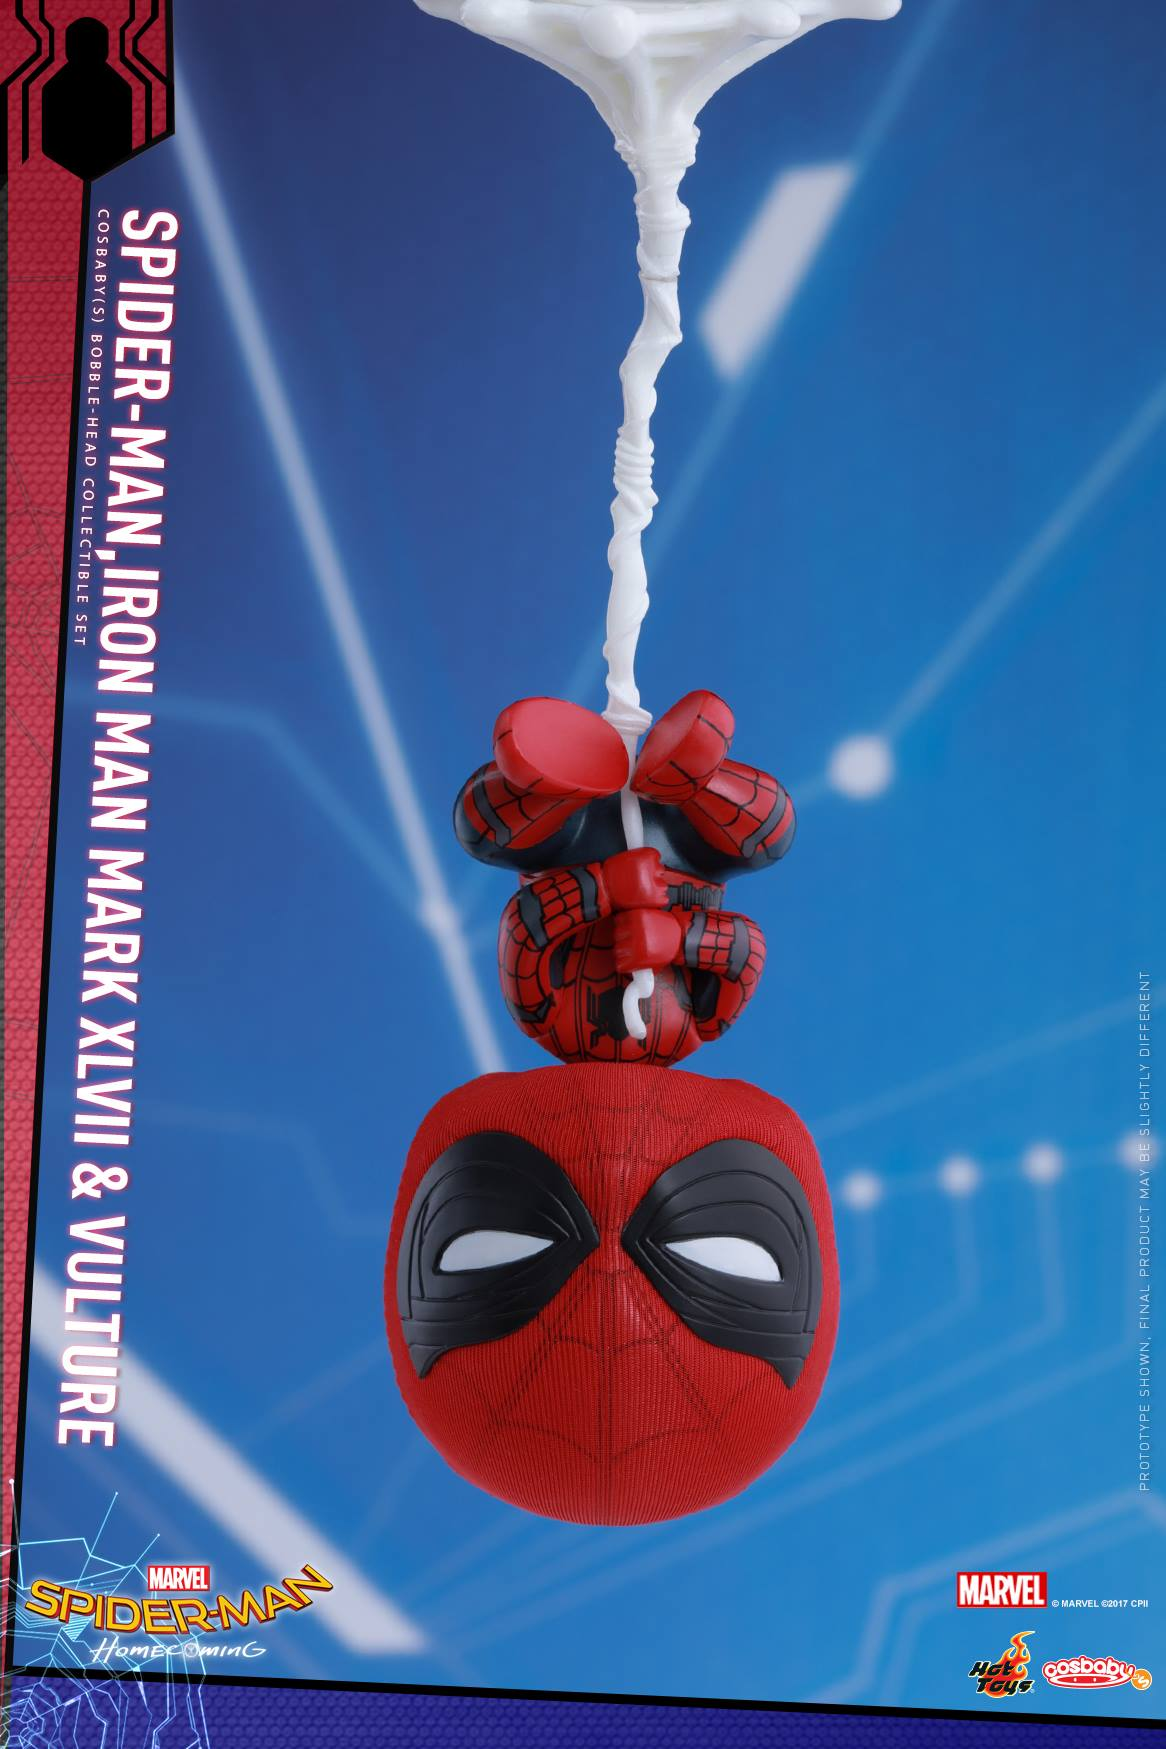 Homecoming Spider Man Toys : Spider man homecoming cosbaby bobble head figures by hot